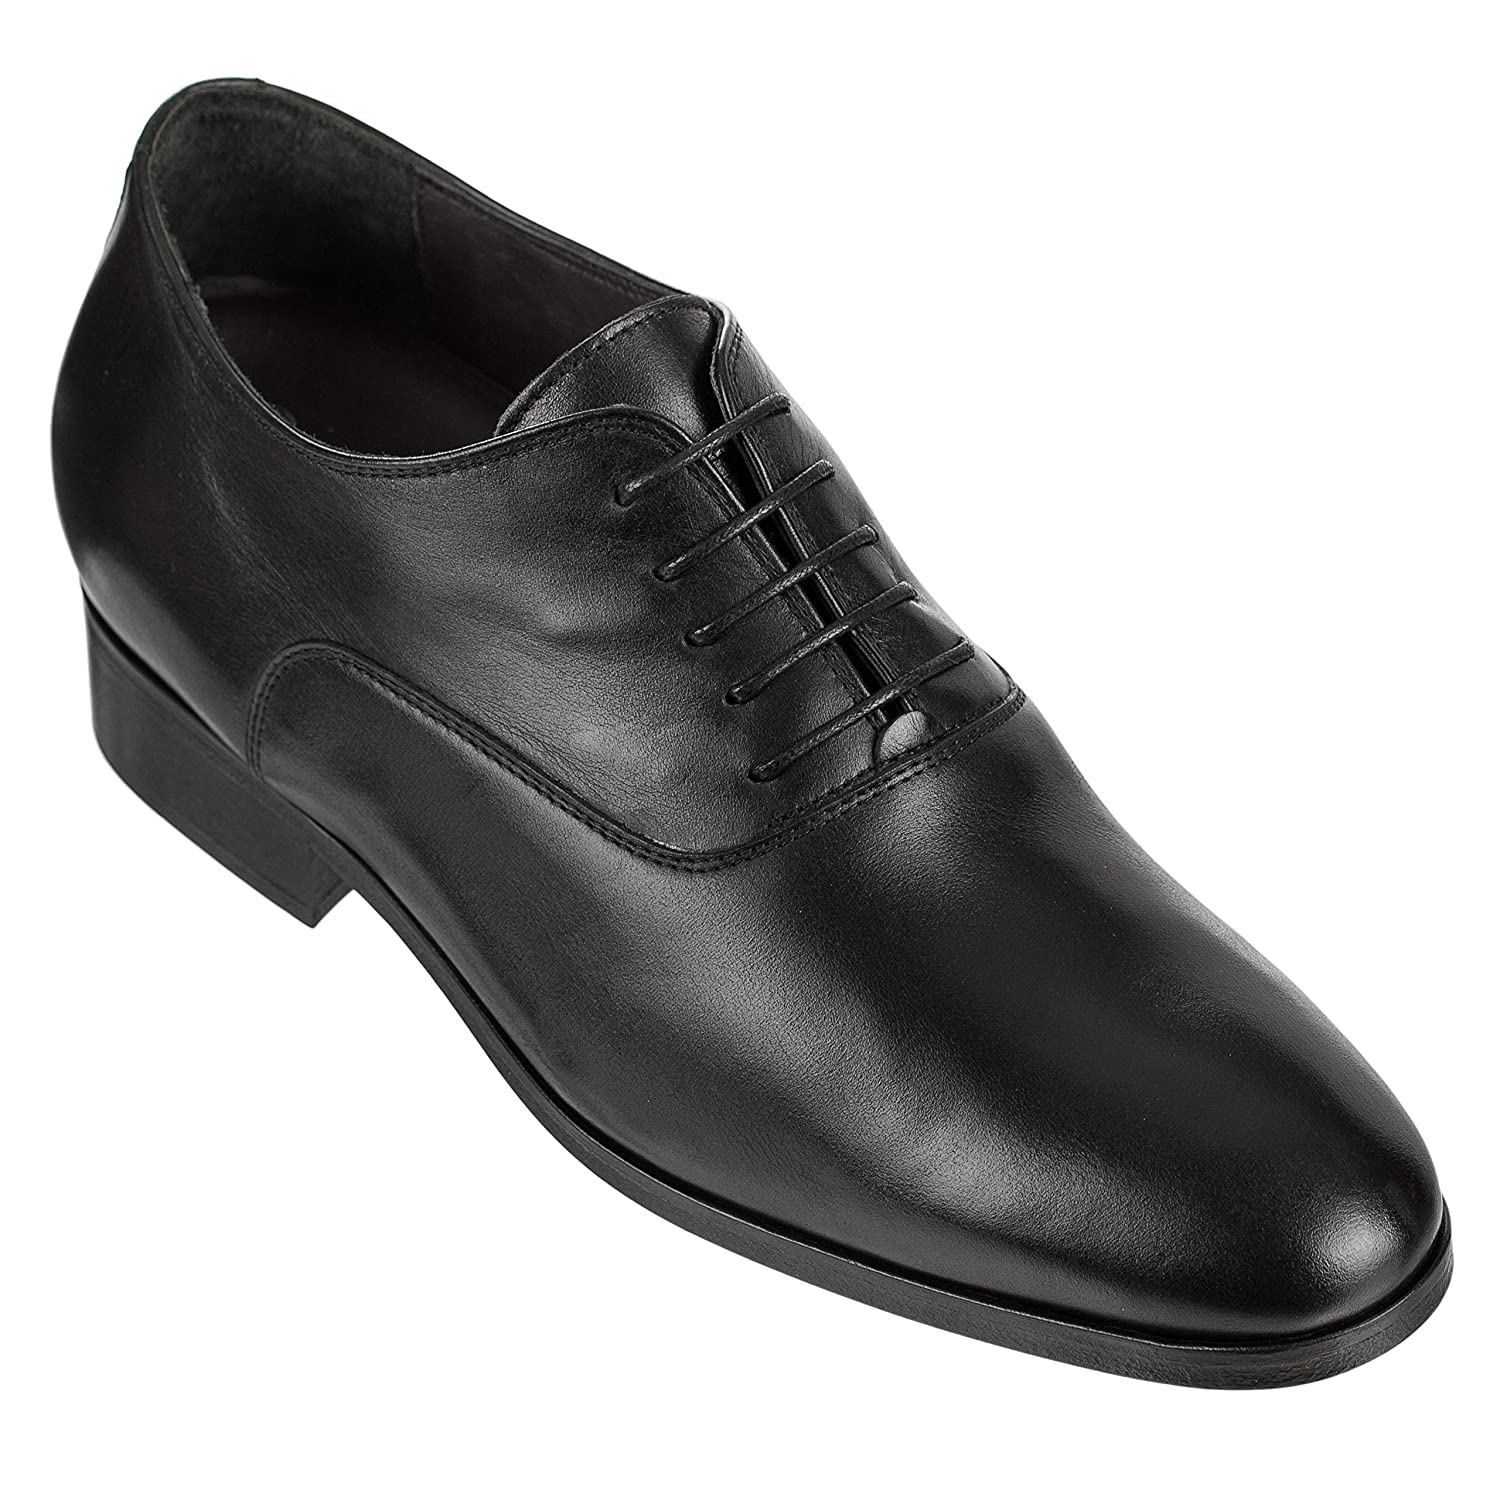 - CALTO Men's Invisible Height Increasing Elevator shoes - Black Premium Leather Lightweight  Made Lace-up Formal Oxfords with Leather Sole - 2.8 Inches Taller - D0225